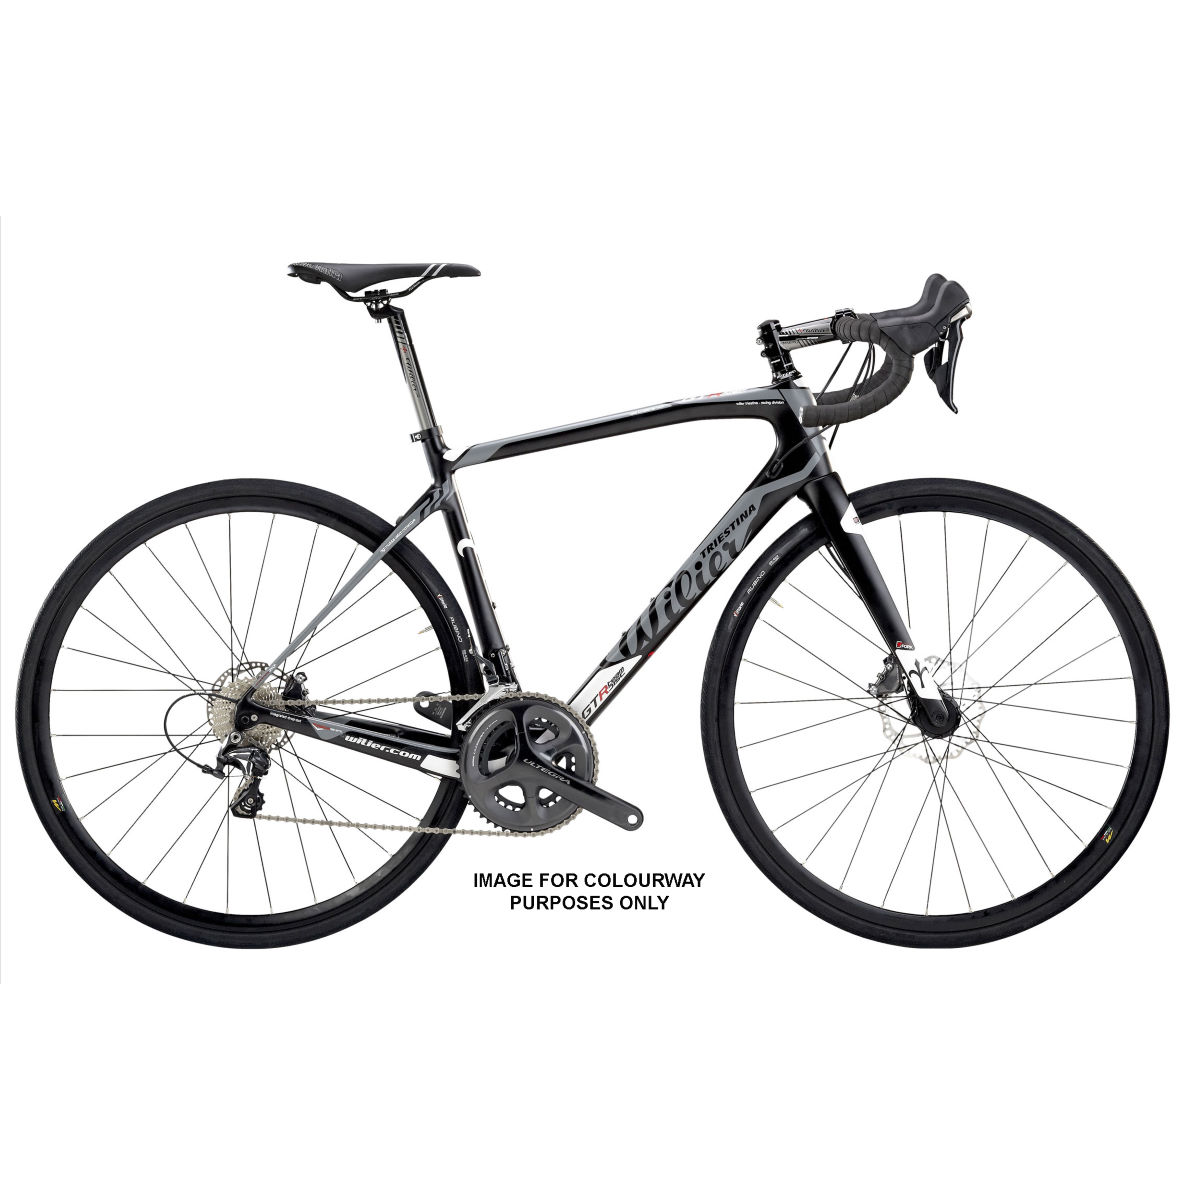 Vélo de route Wilier GTR Team Endurance (disque, 105, 2017) - Small Stock Bike Grey/Grey Vélos de route